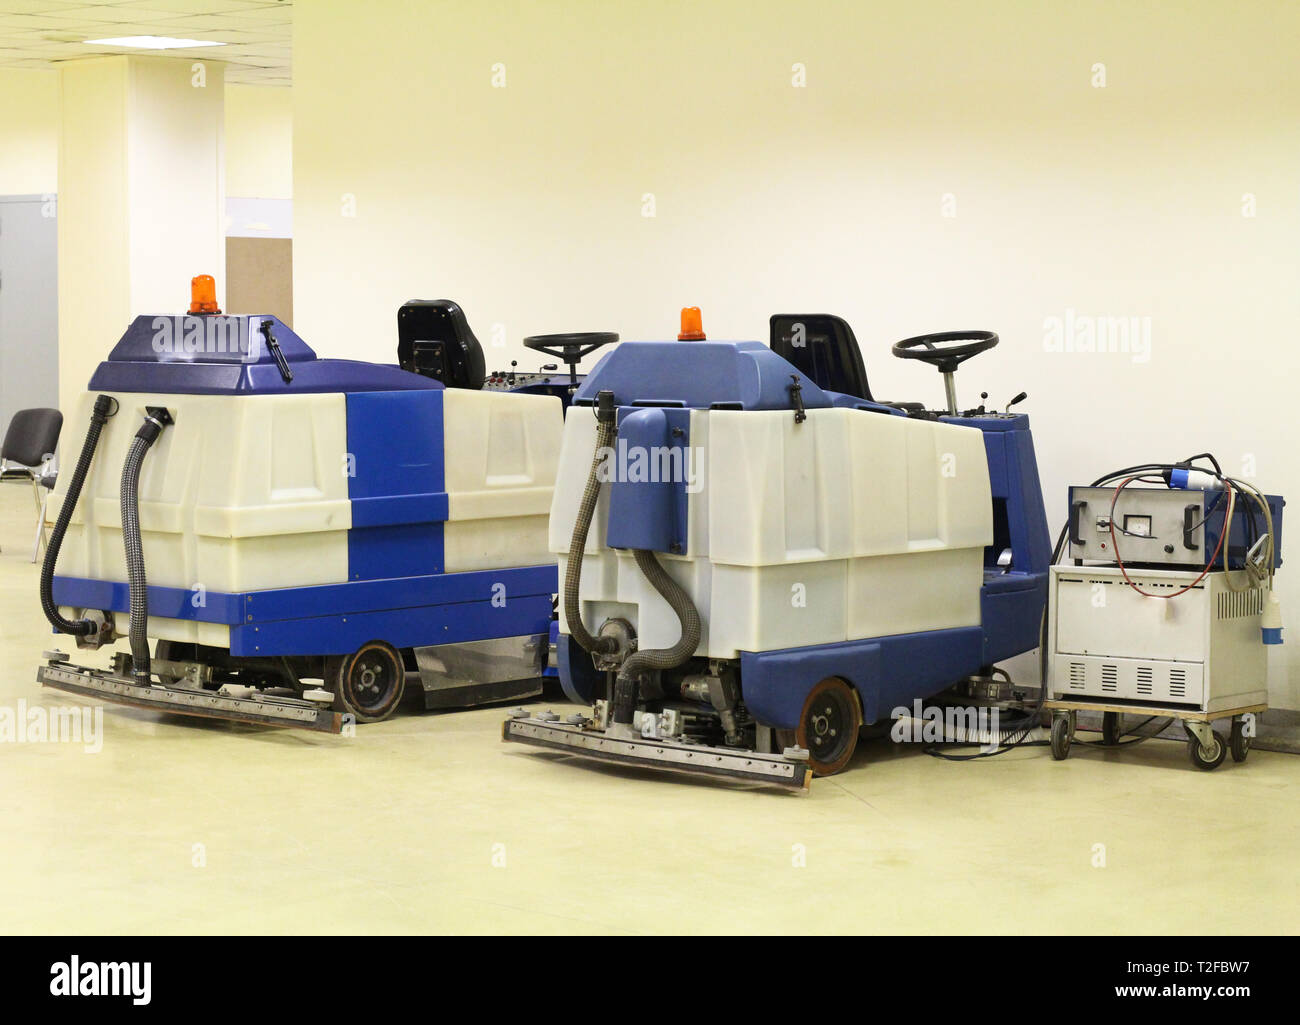 Machines for cleaning large spaces. Professional floor cleaning machines. High-performance autonomous self-propelled scrubber. - Stock Image